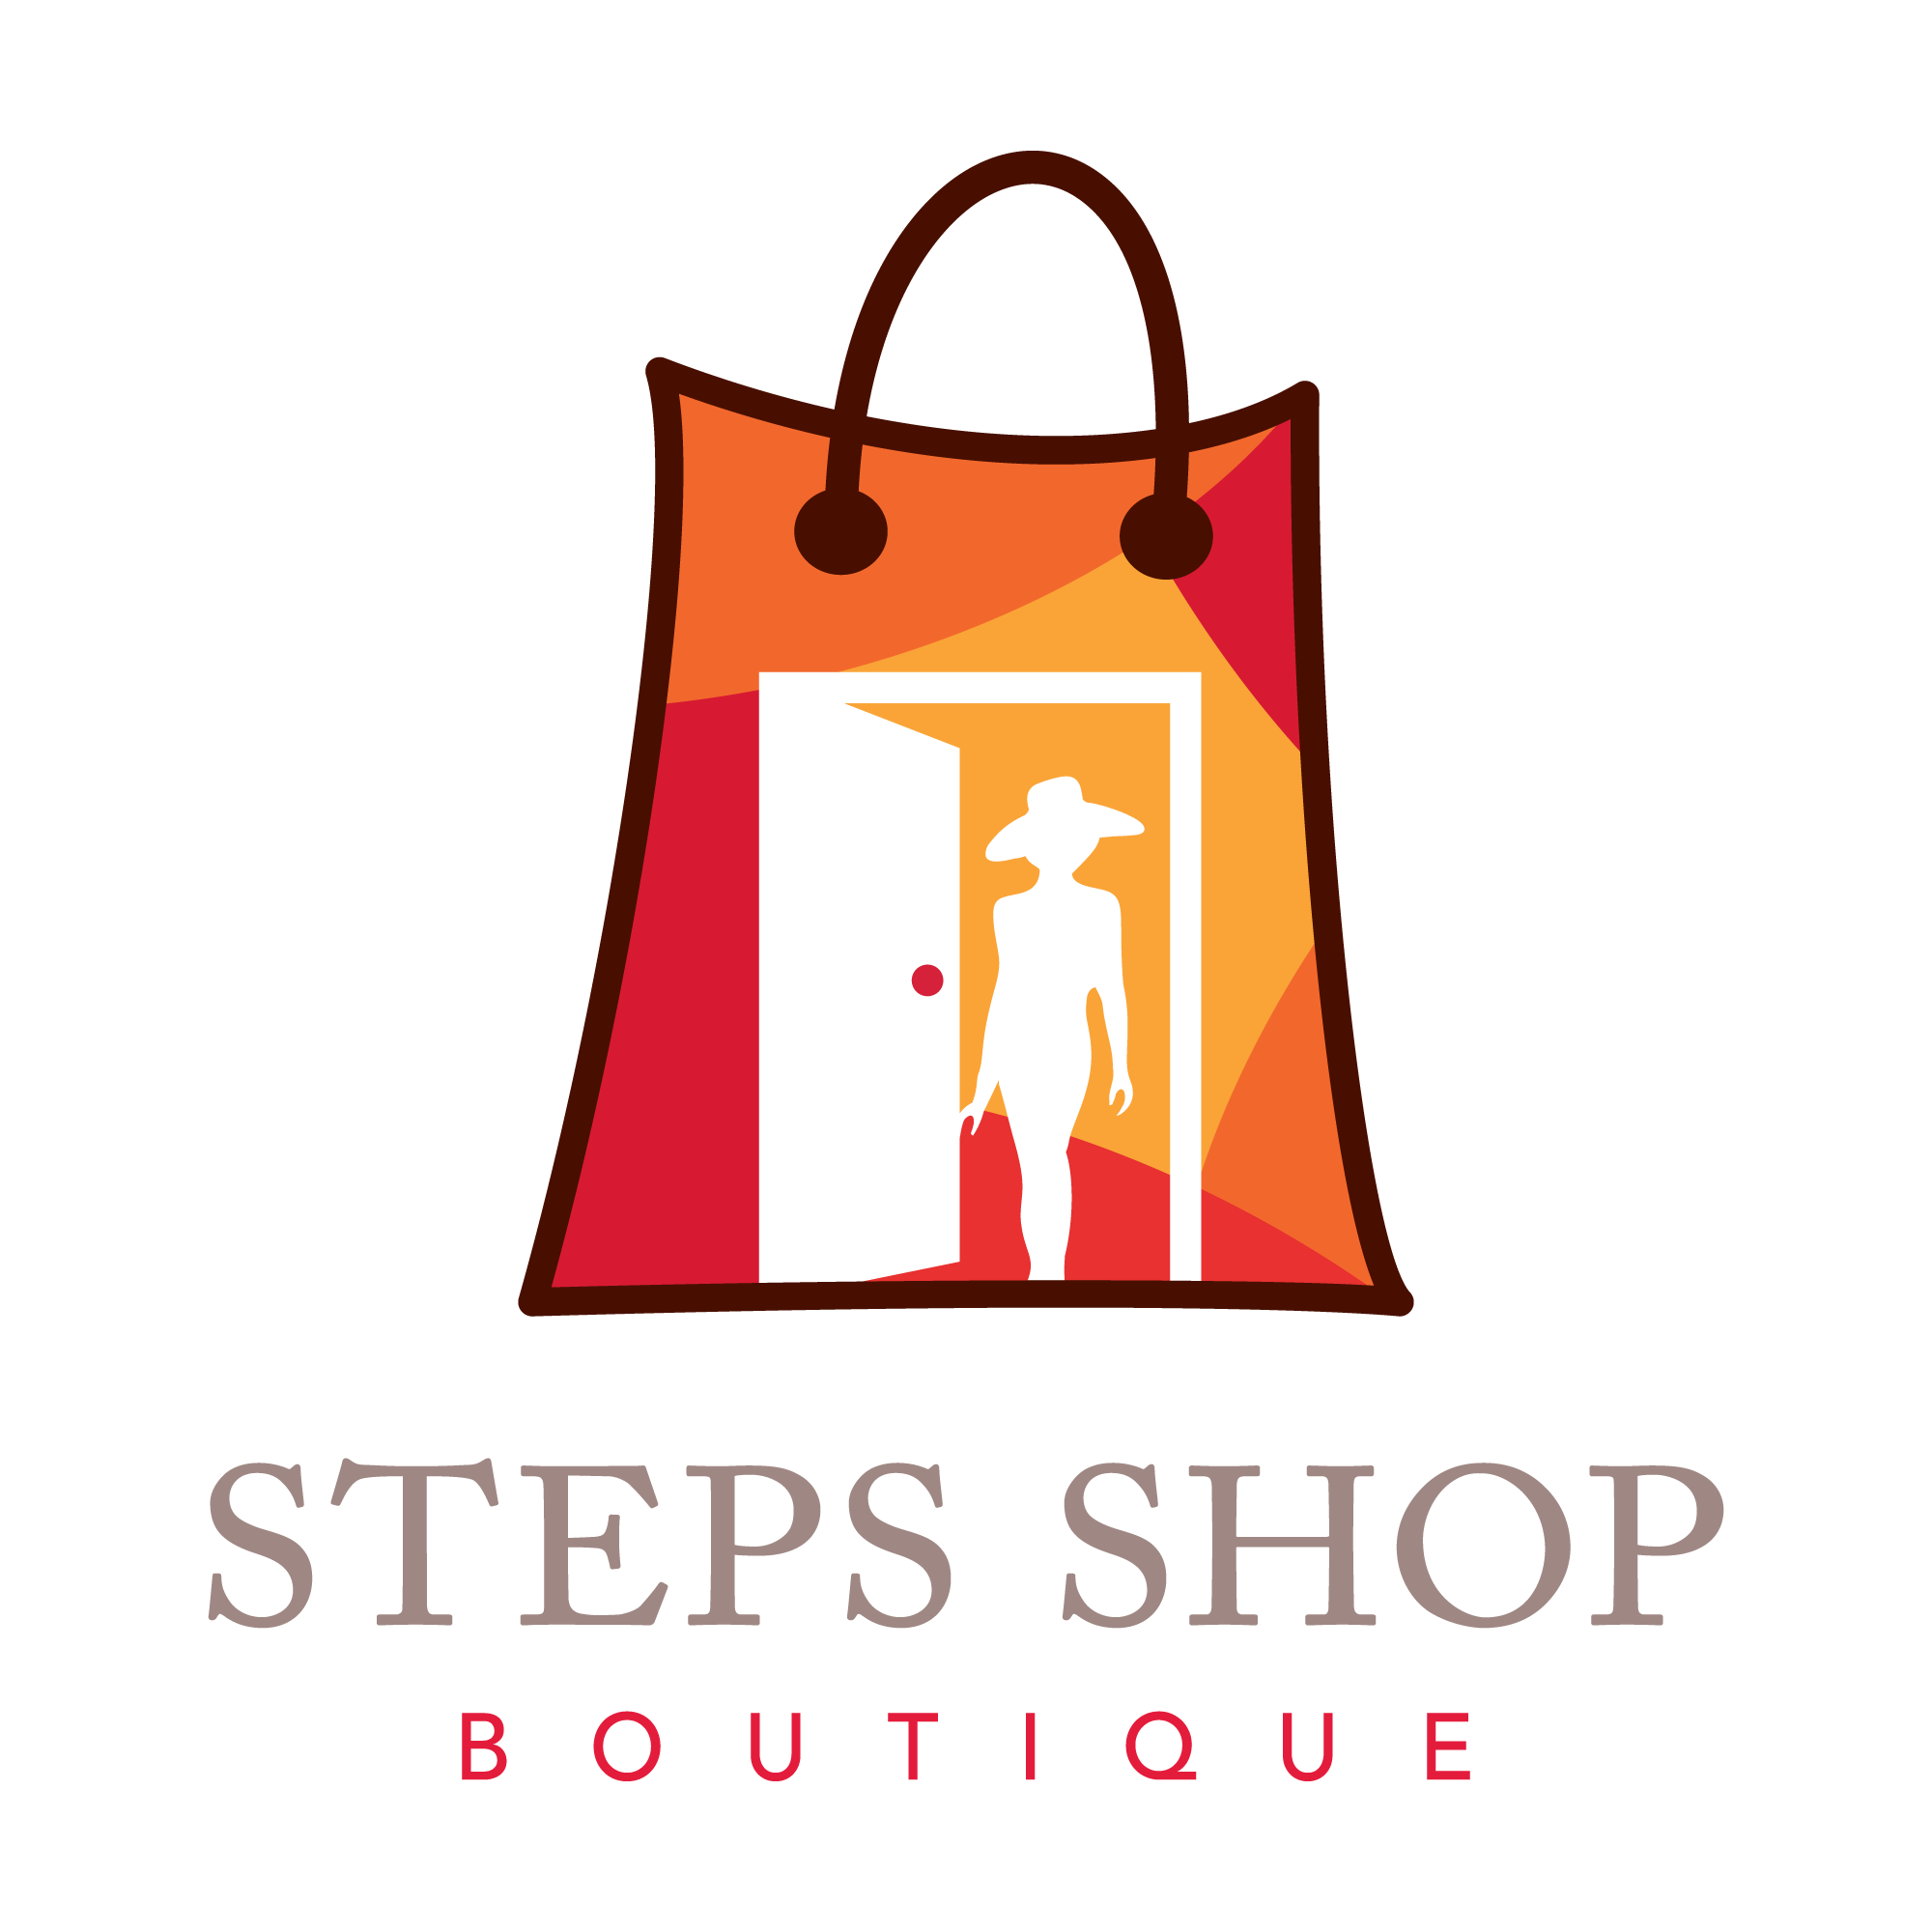 801130c2d02d A feminine logo with a colorful and attractive design showing a shopping  bag in vibrant colors